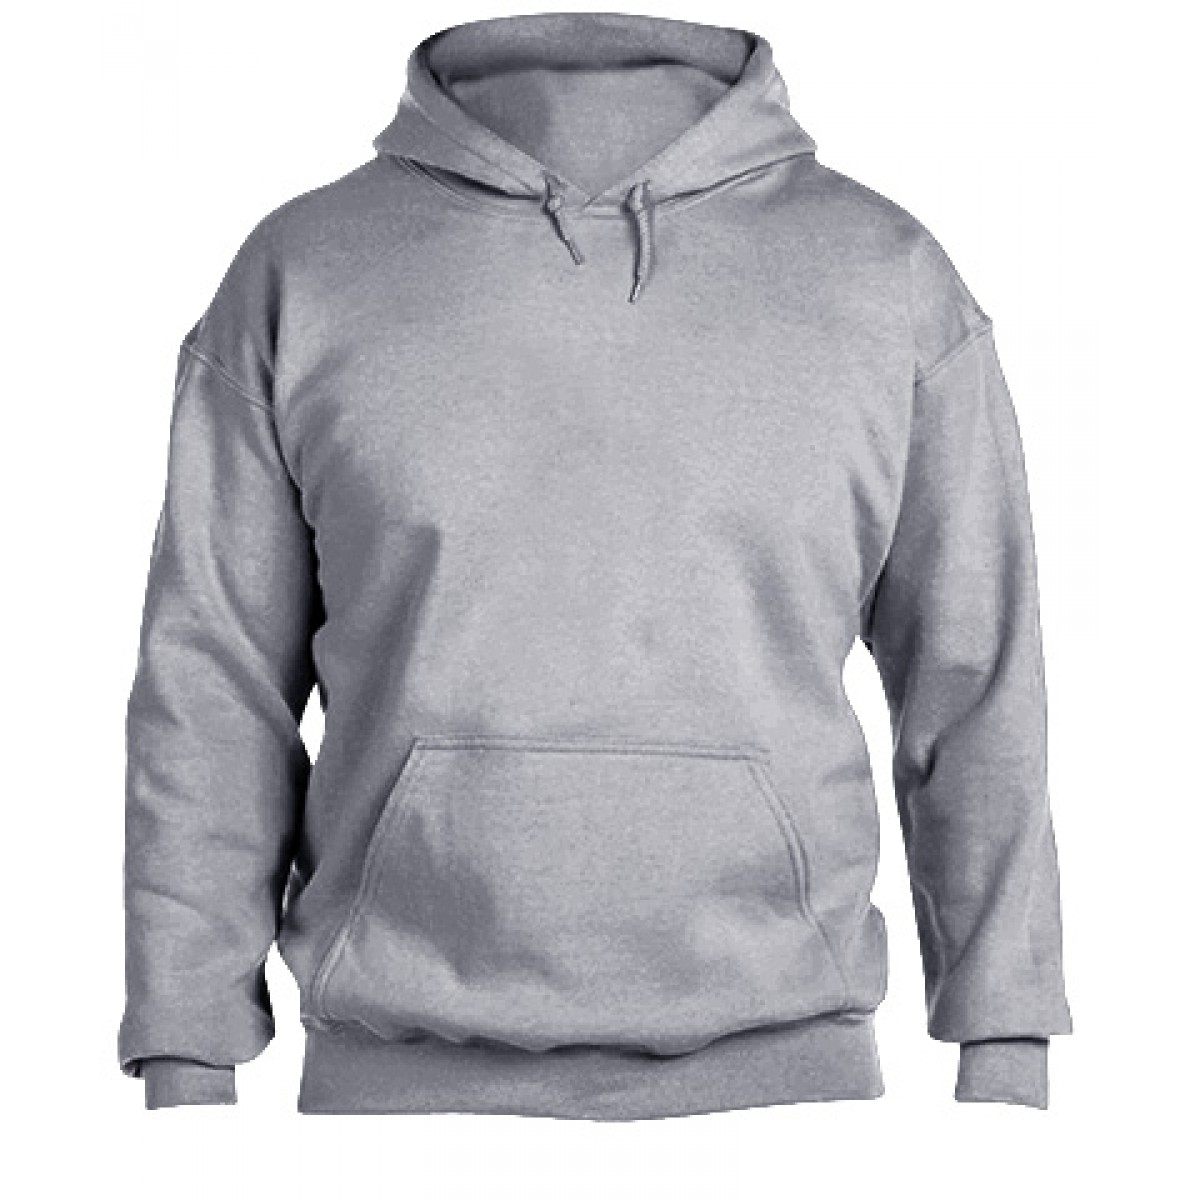 Hooded Sweatshirt 50/50 Heavy Blend -Gray-M